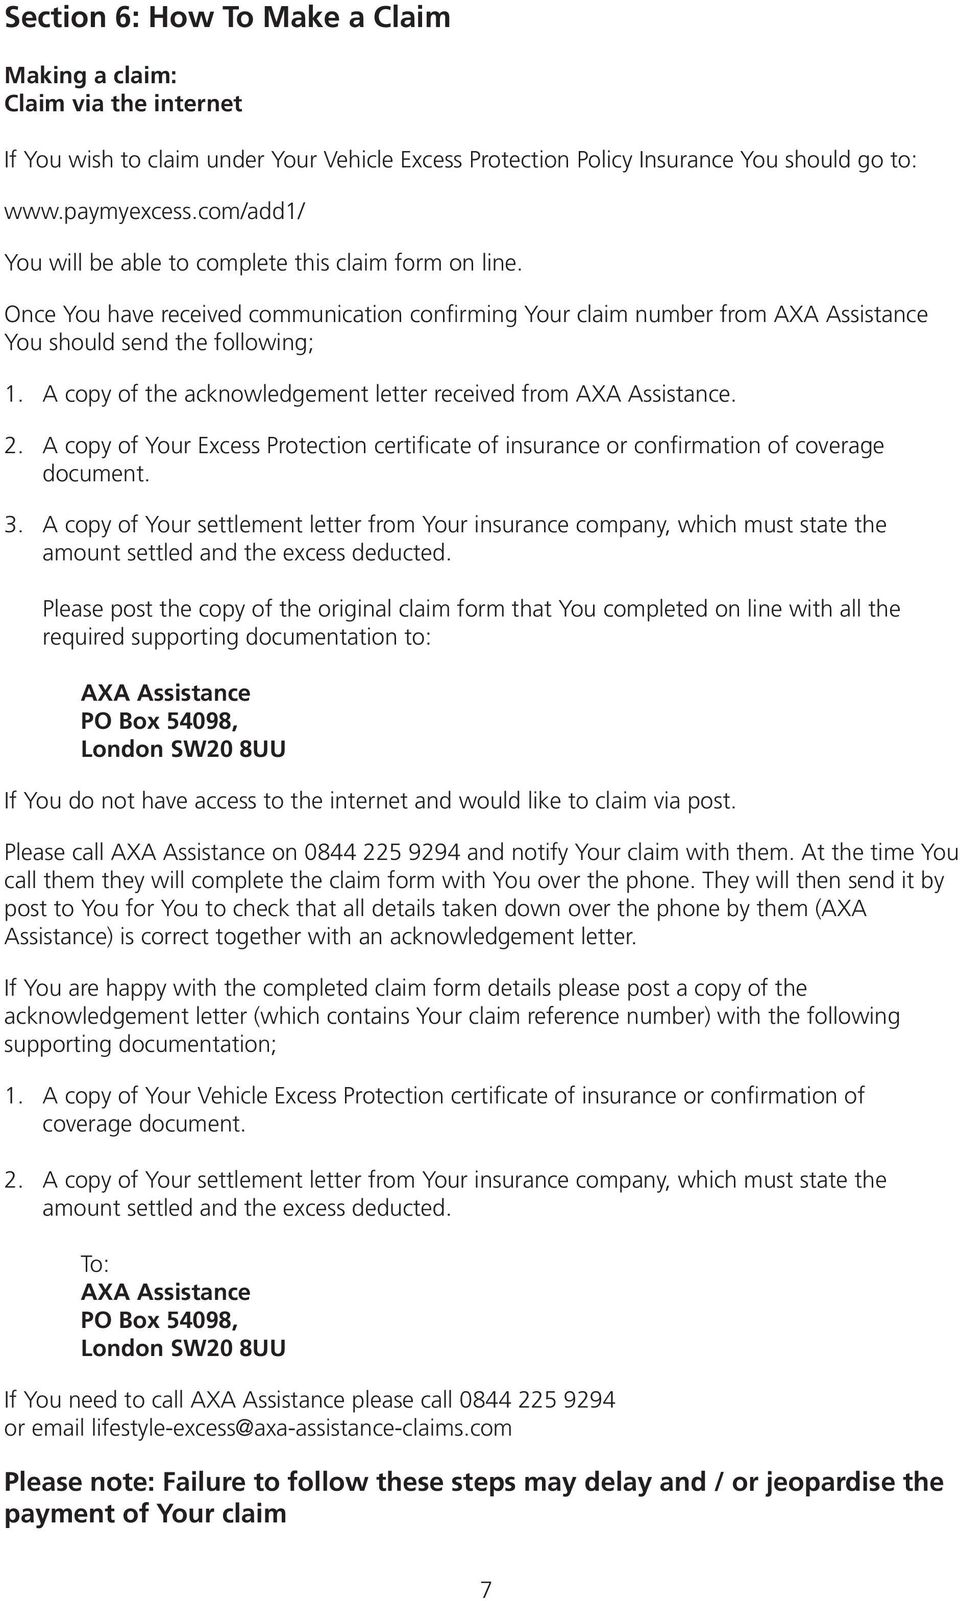 A copy of the acknowledgement letter received from AXA Assistance. 2. A copy of Your Excess Protection certificate of insurance or confirmation of coverage document. 3.